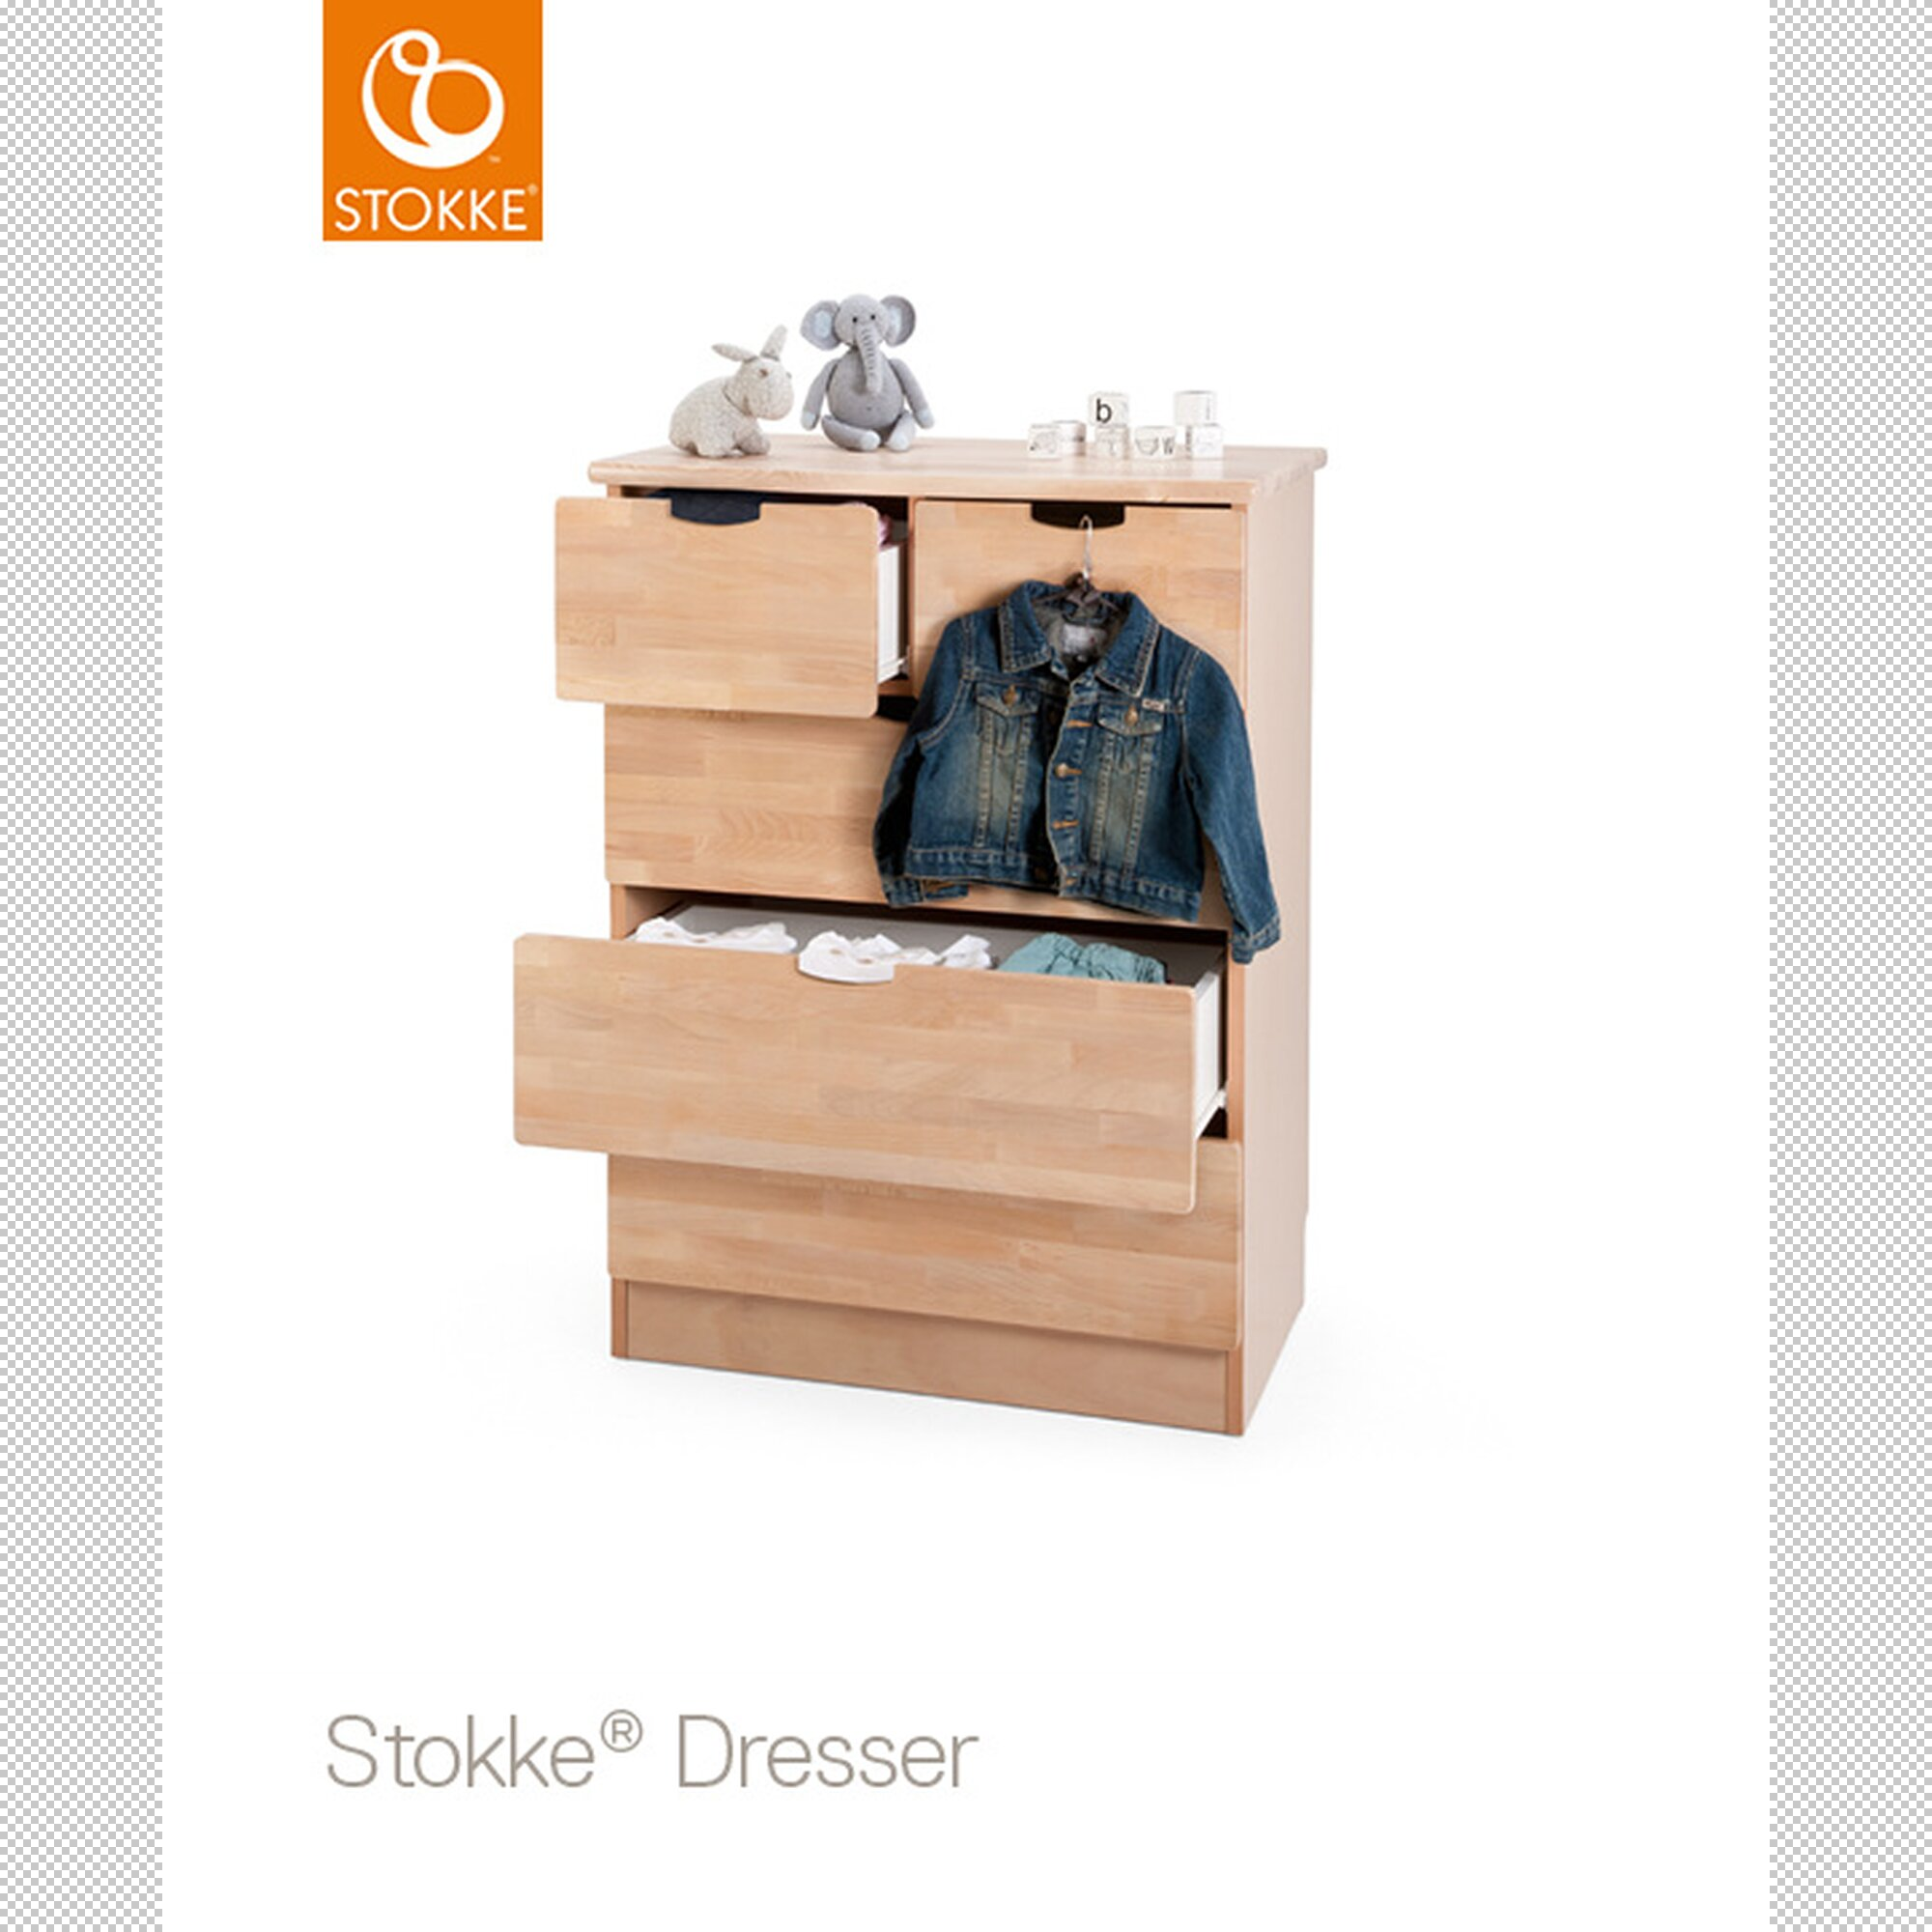 stokke-wickelkommode-dresser-teil-1-natural